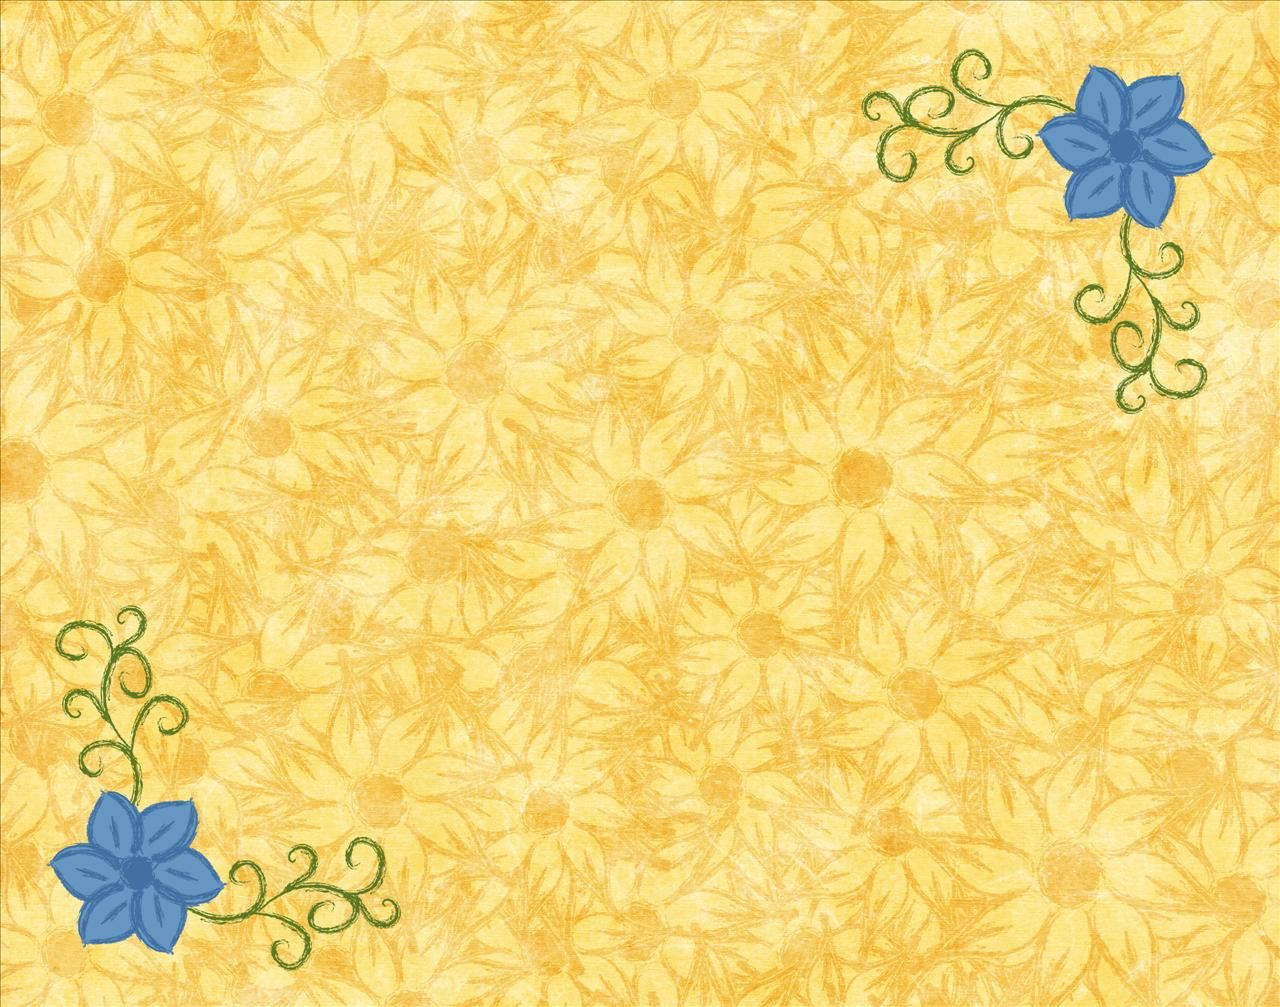 This is nice design borders Yellow and Blue Flowers A